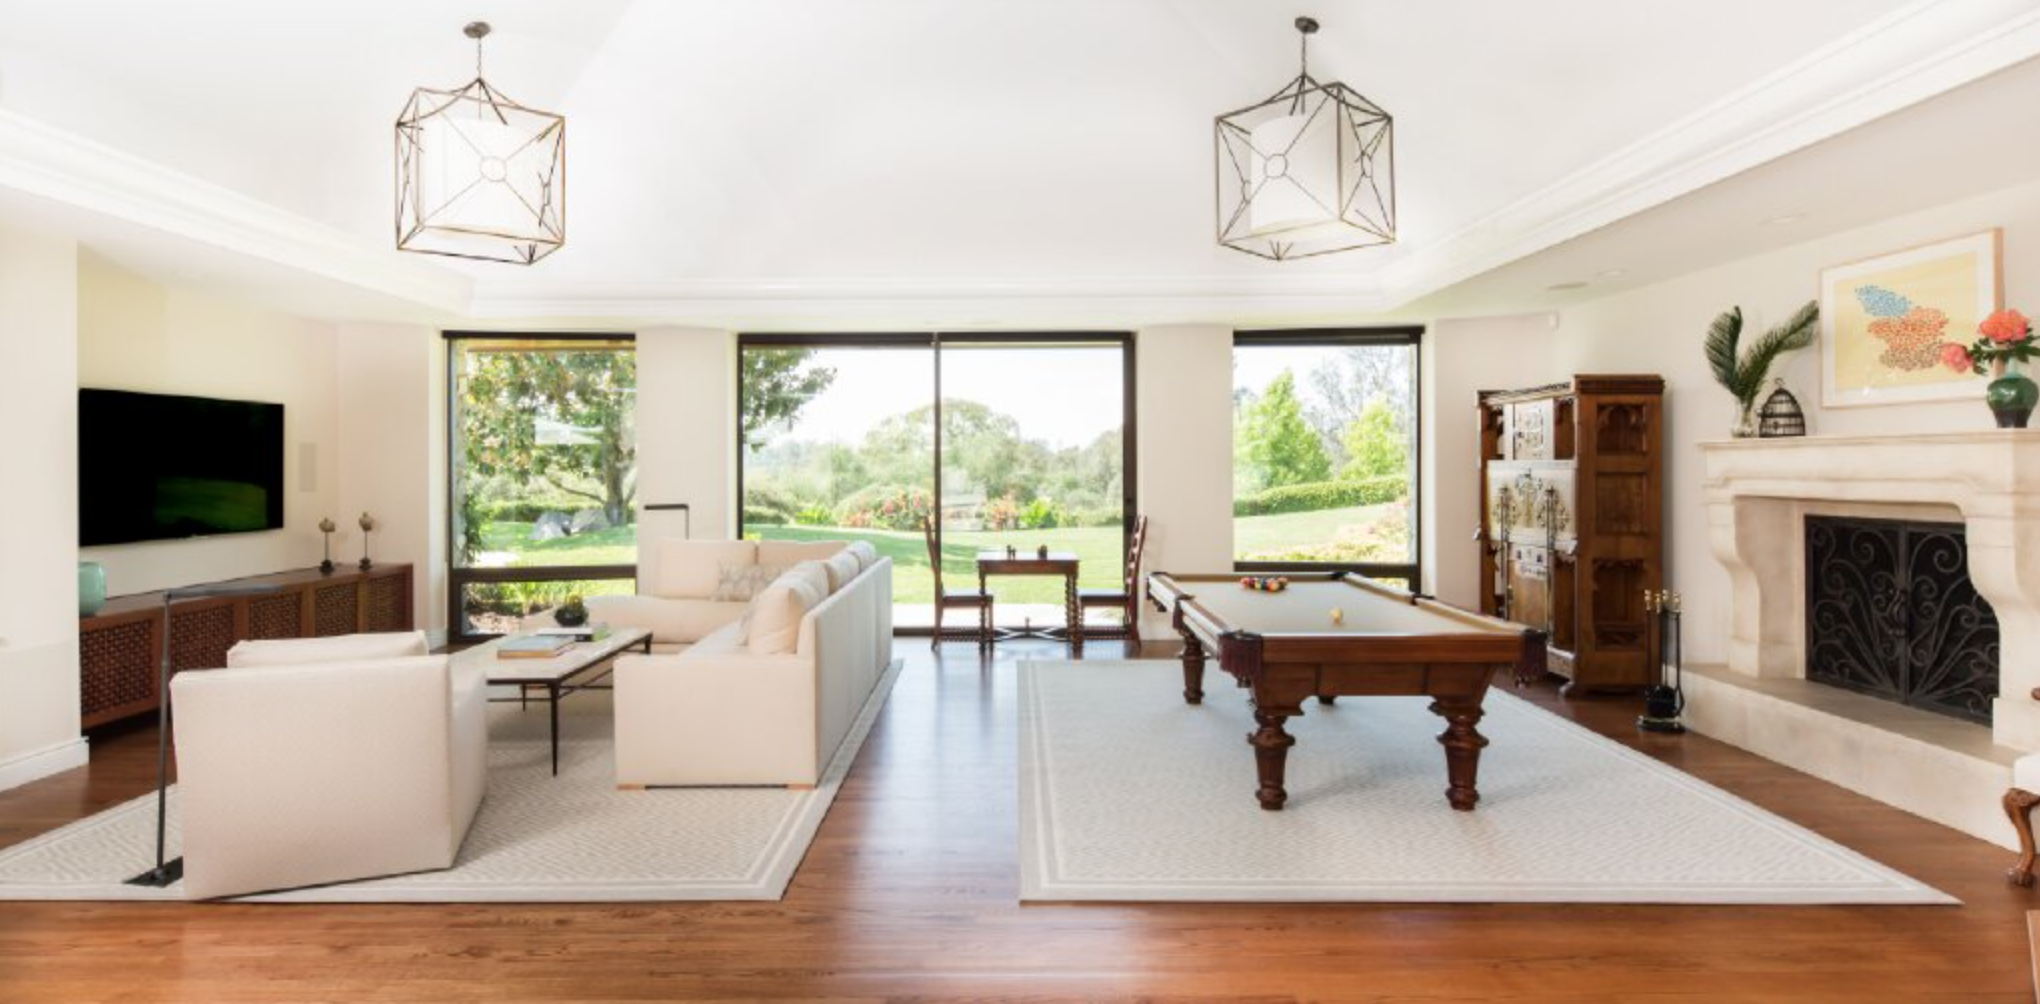 Windows and doors for indoor outdoor lifestyle in Southern California